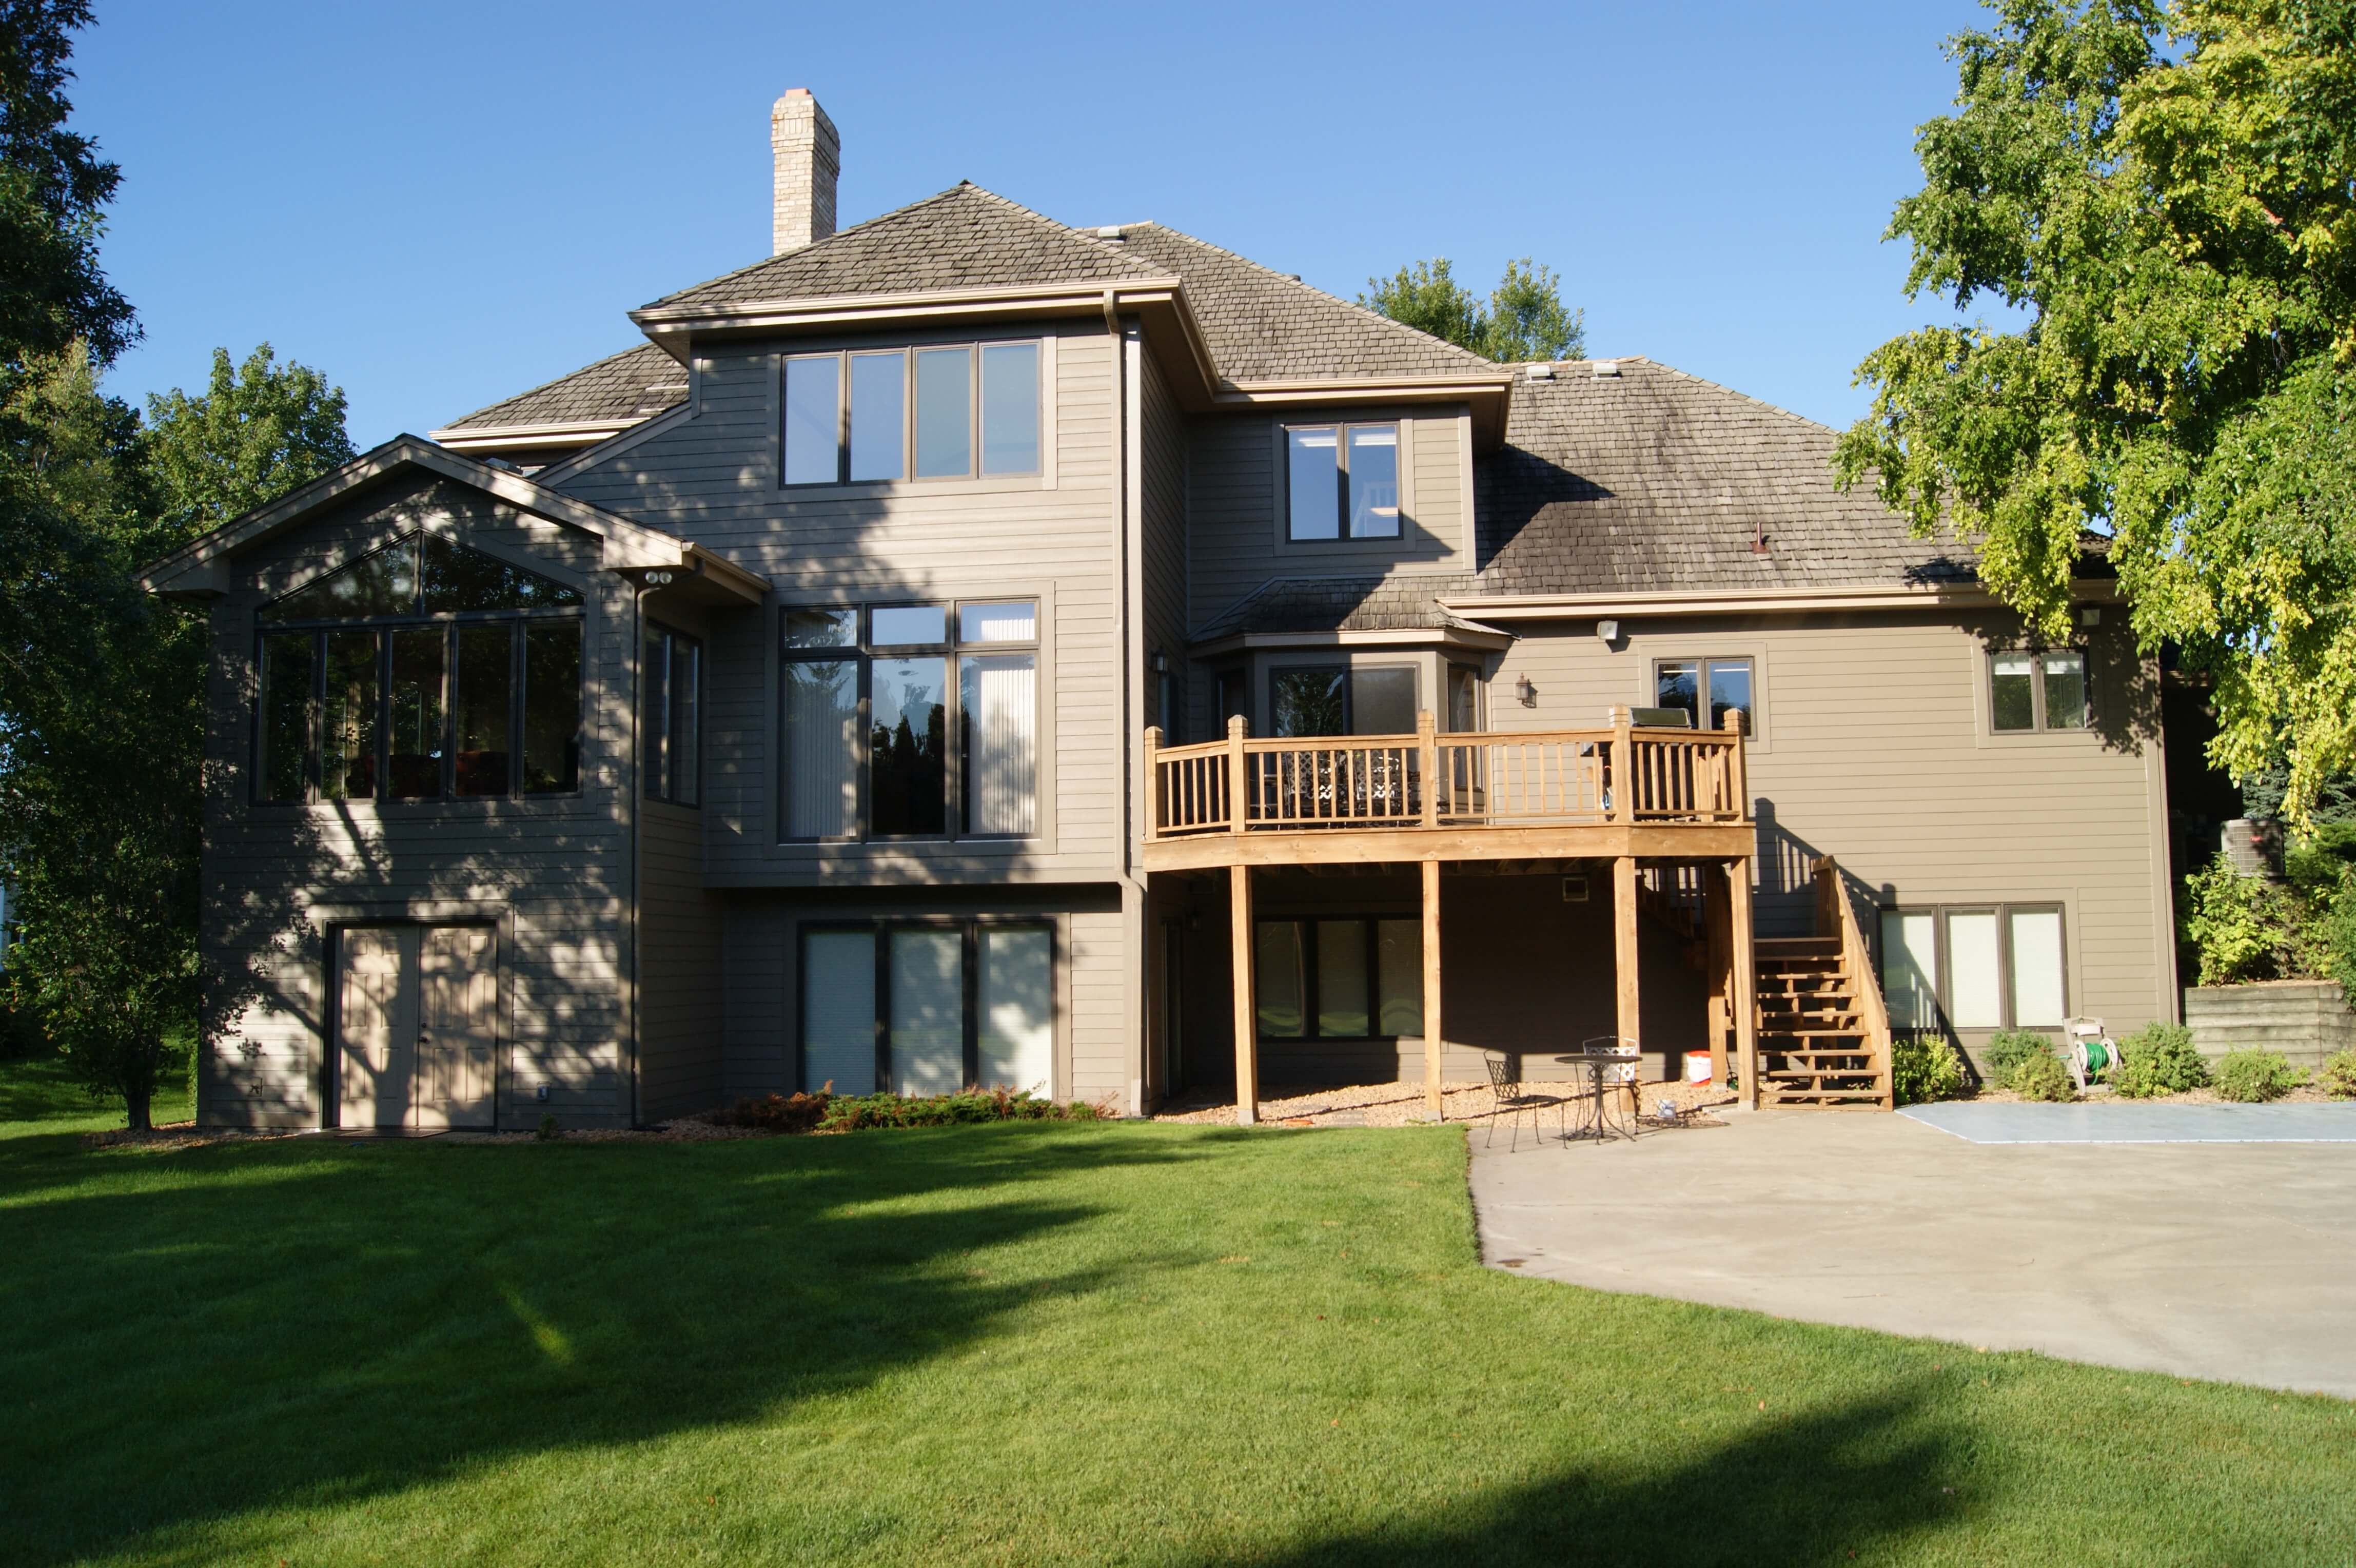 Stucco Repairs Case Study 3 Redo Electrical Wiring House Cost Benefits Of A Full Tear Off And